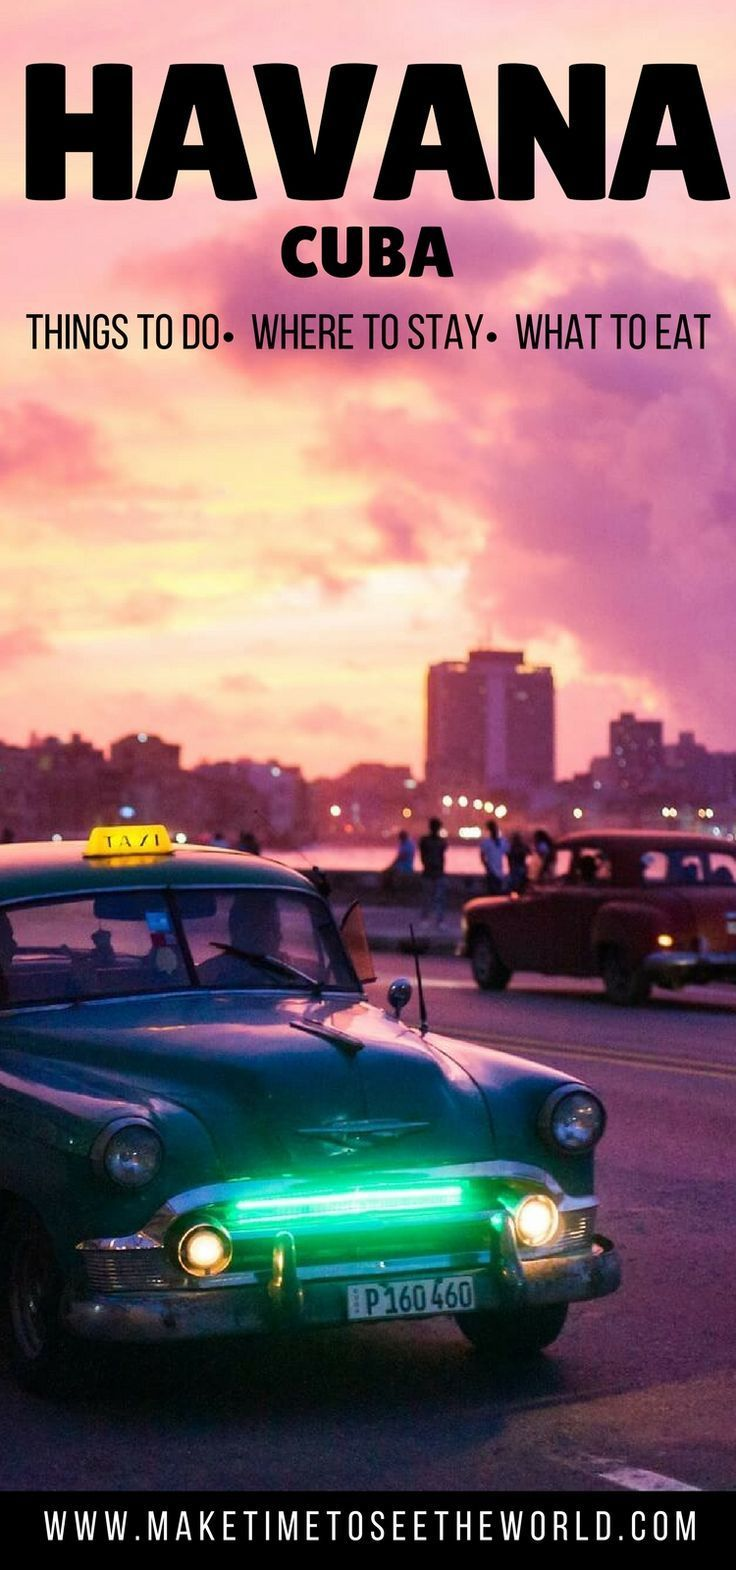 Wondering what to do in Havana? This guide has you covered with visitor info inc wifi, transport, cocktails, hotels and the Top Things To Do in Havana Cuba ******************************************************************************** Havana Cuba | Havana | Habana | Things to do in Havana | Wifi in Cuba | When to visit Cuba | What to do in Havana | Havana Cuba Points of Interest | Things to do in Havana | Things to do in Habana | Cuba Tourism